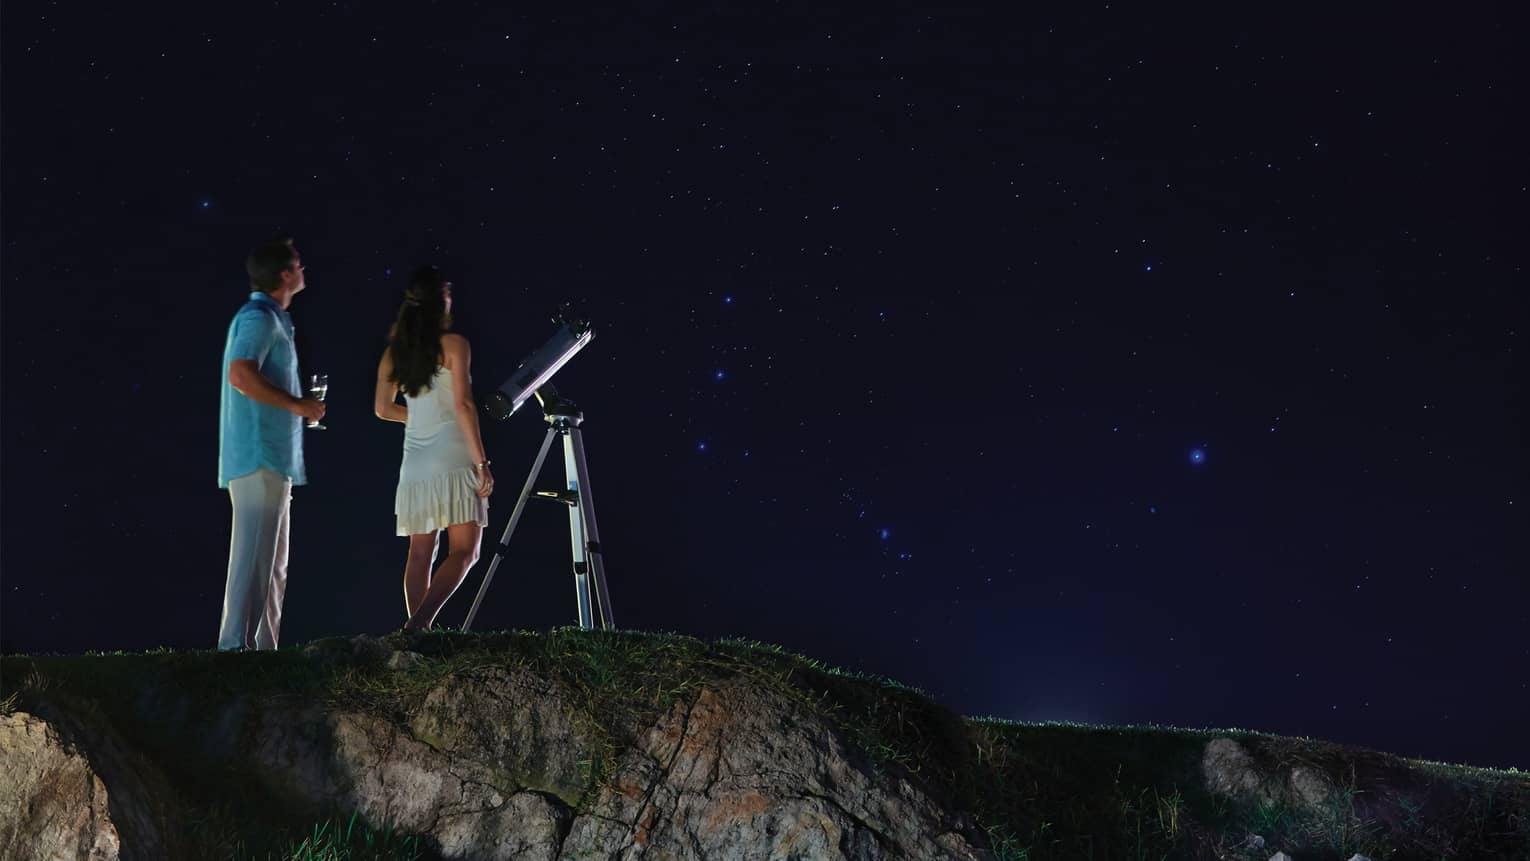 Woman in white dress and man in blue, holding wine glass stand by telescope looking up at stars